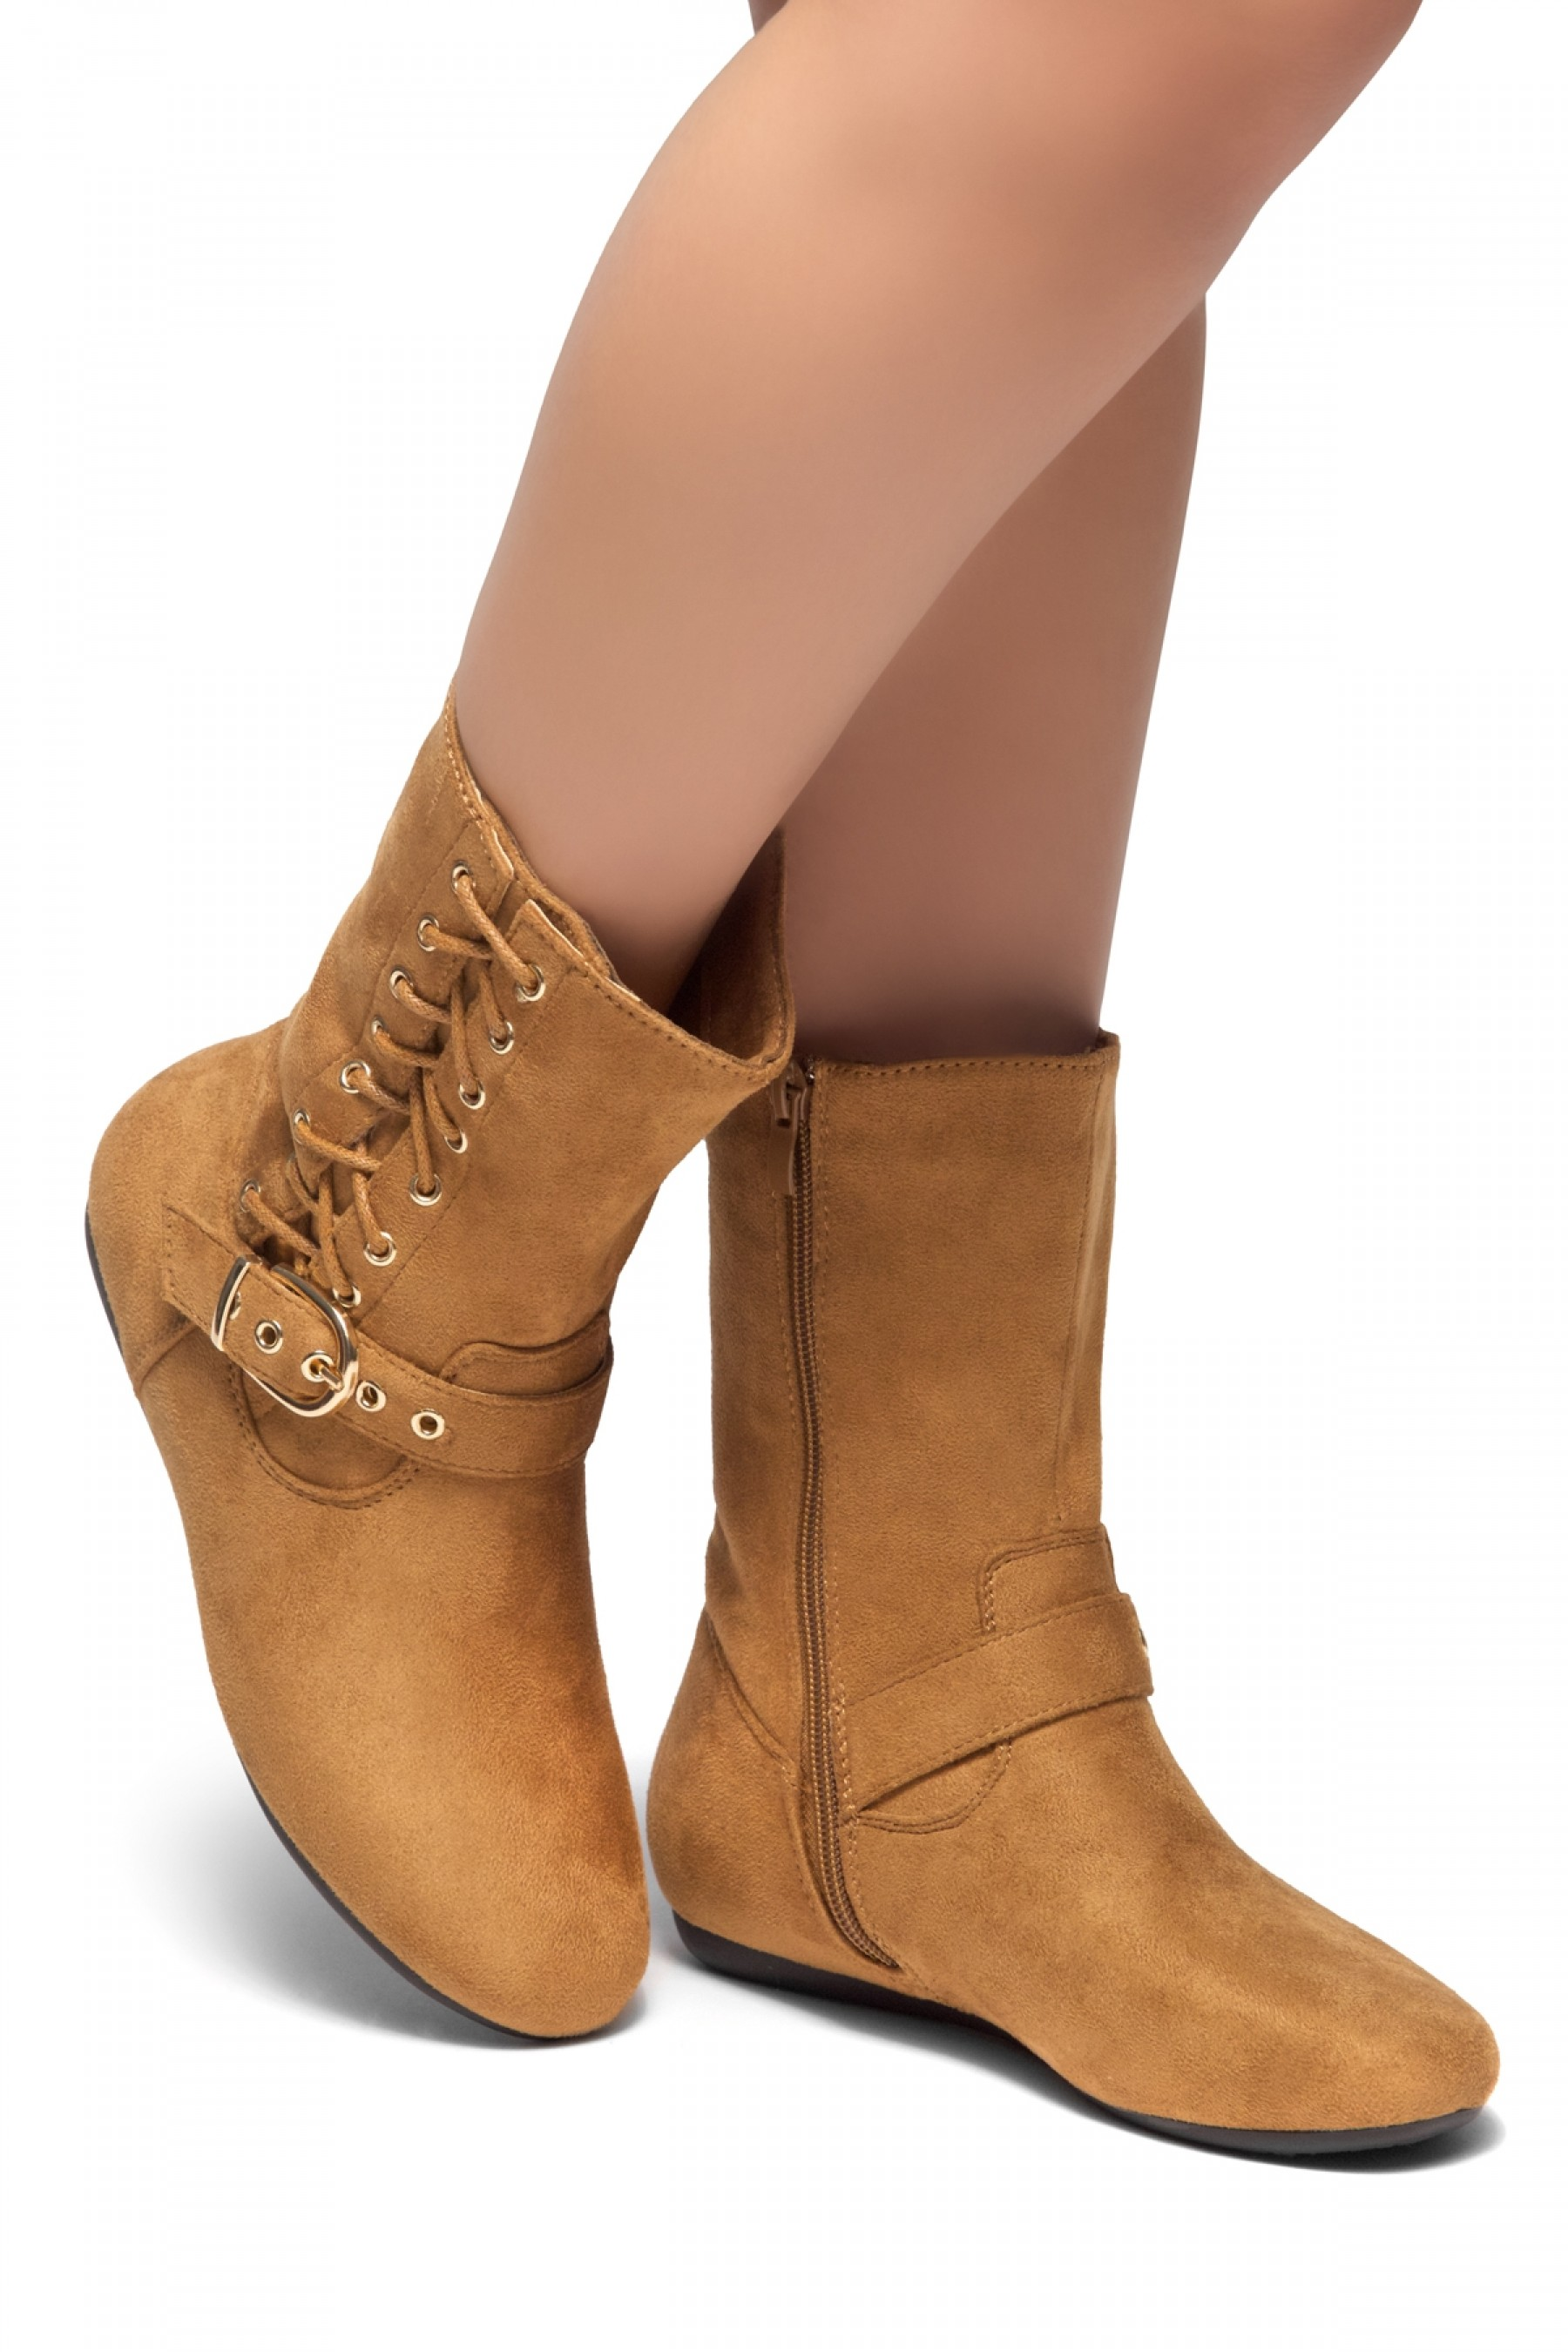 HerStyle RULE BREAKING-Round toe, stacked heel, buckle and shoe lace detail detail (Cognac)